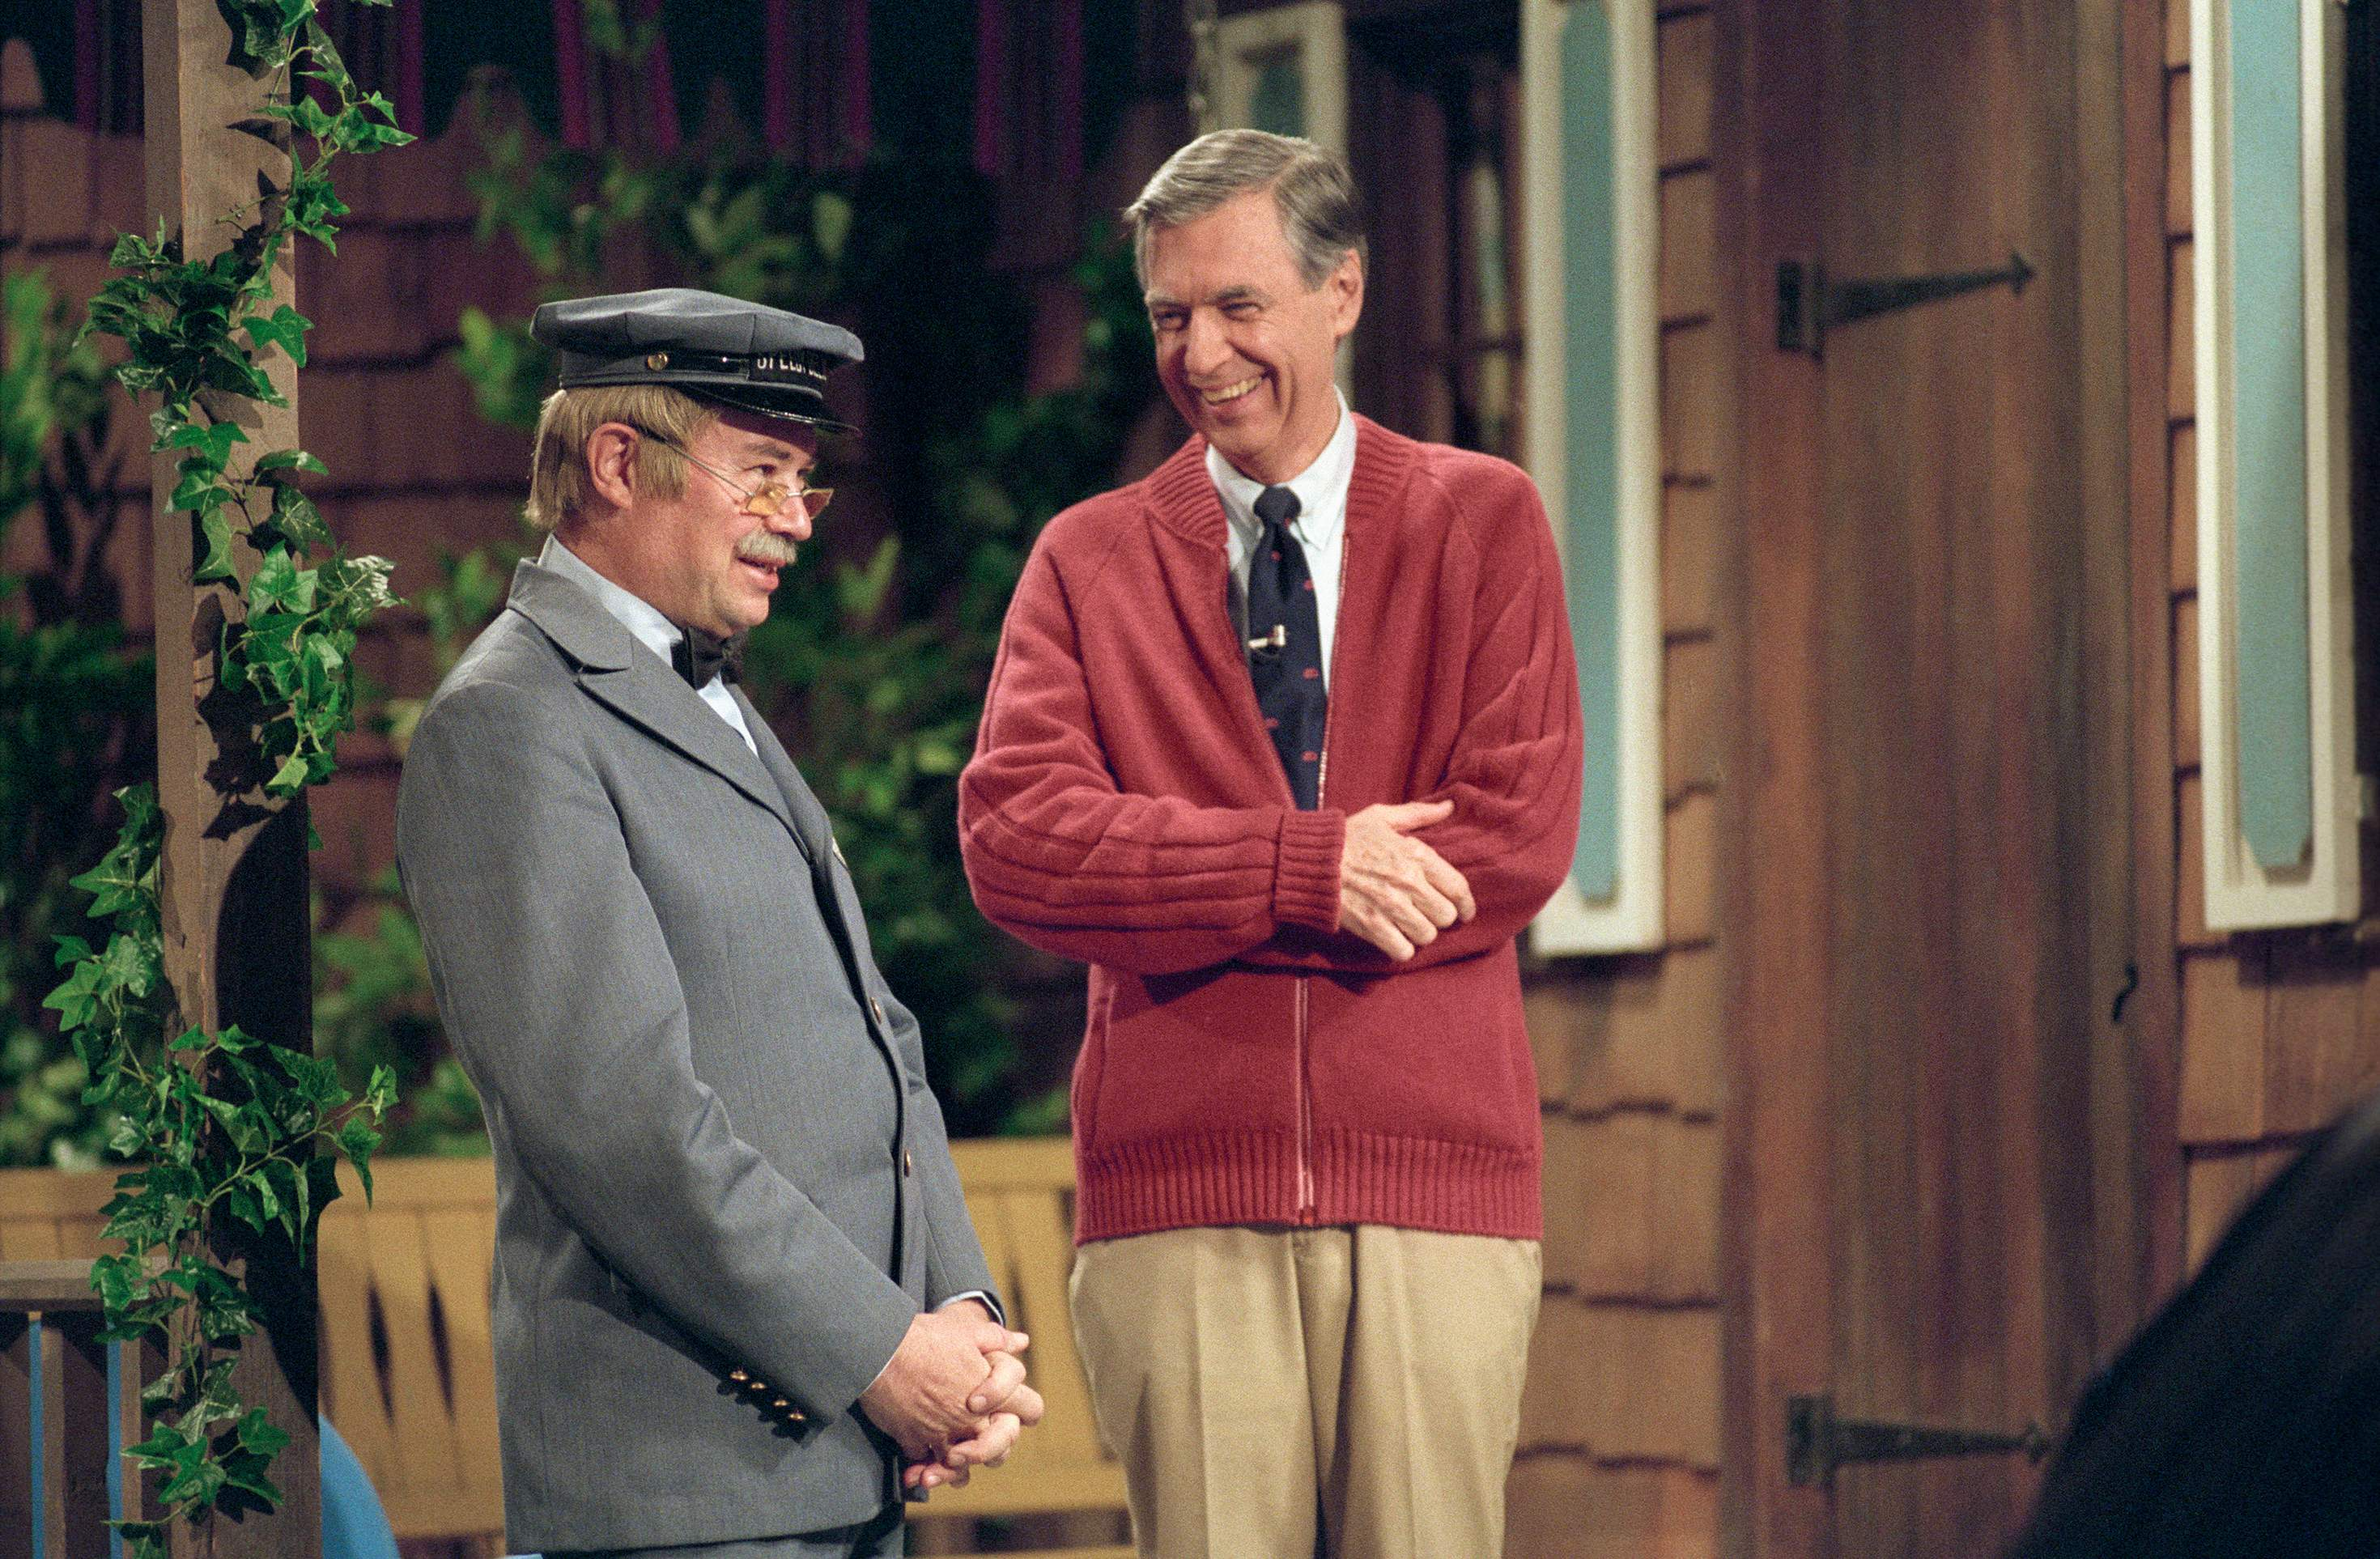 Why is Mister Rogers making adults cry decades later?